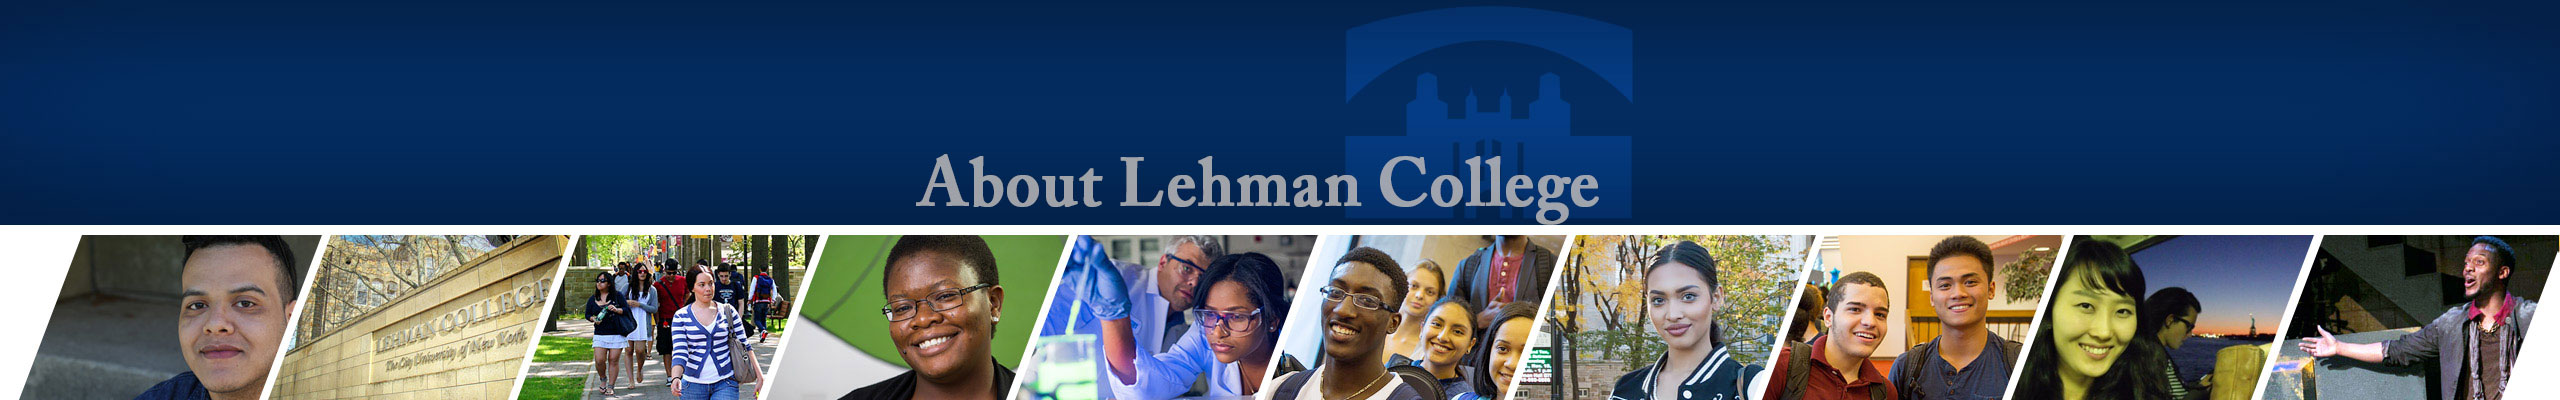 About Lehman College Banner Image